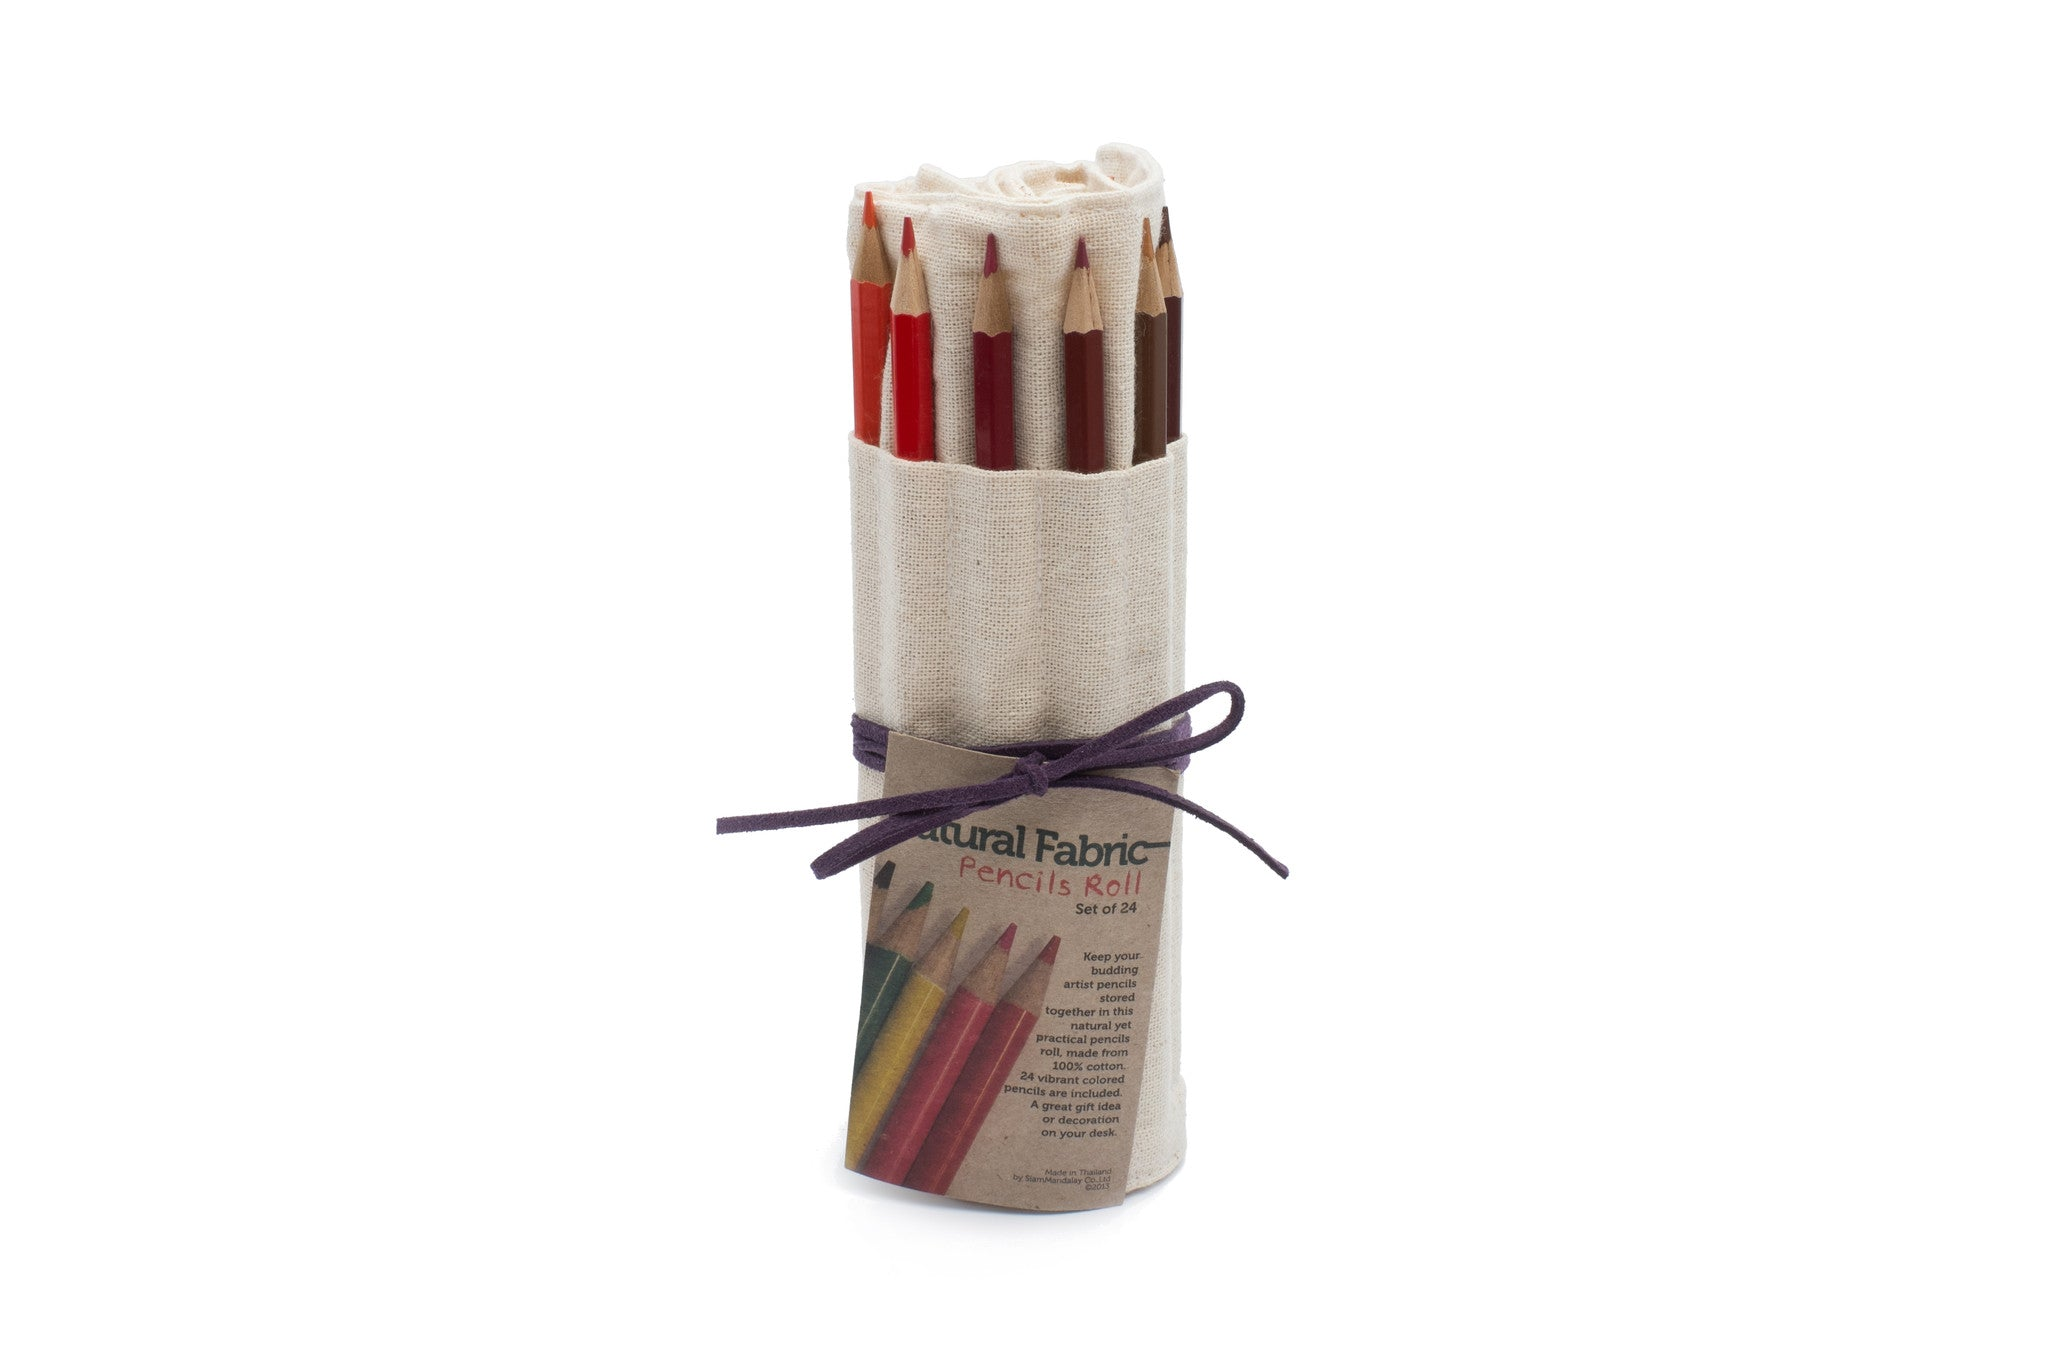 24 Colored Pencils - Natural Fabric with Purple Leather Cord